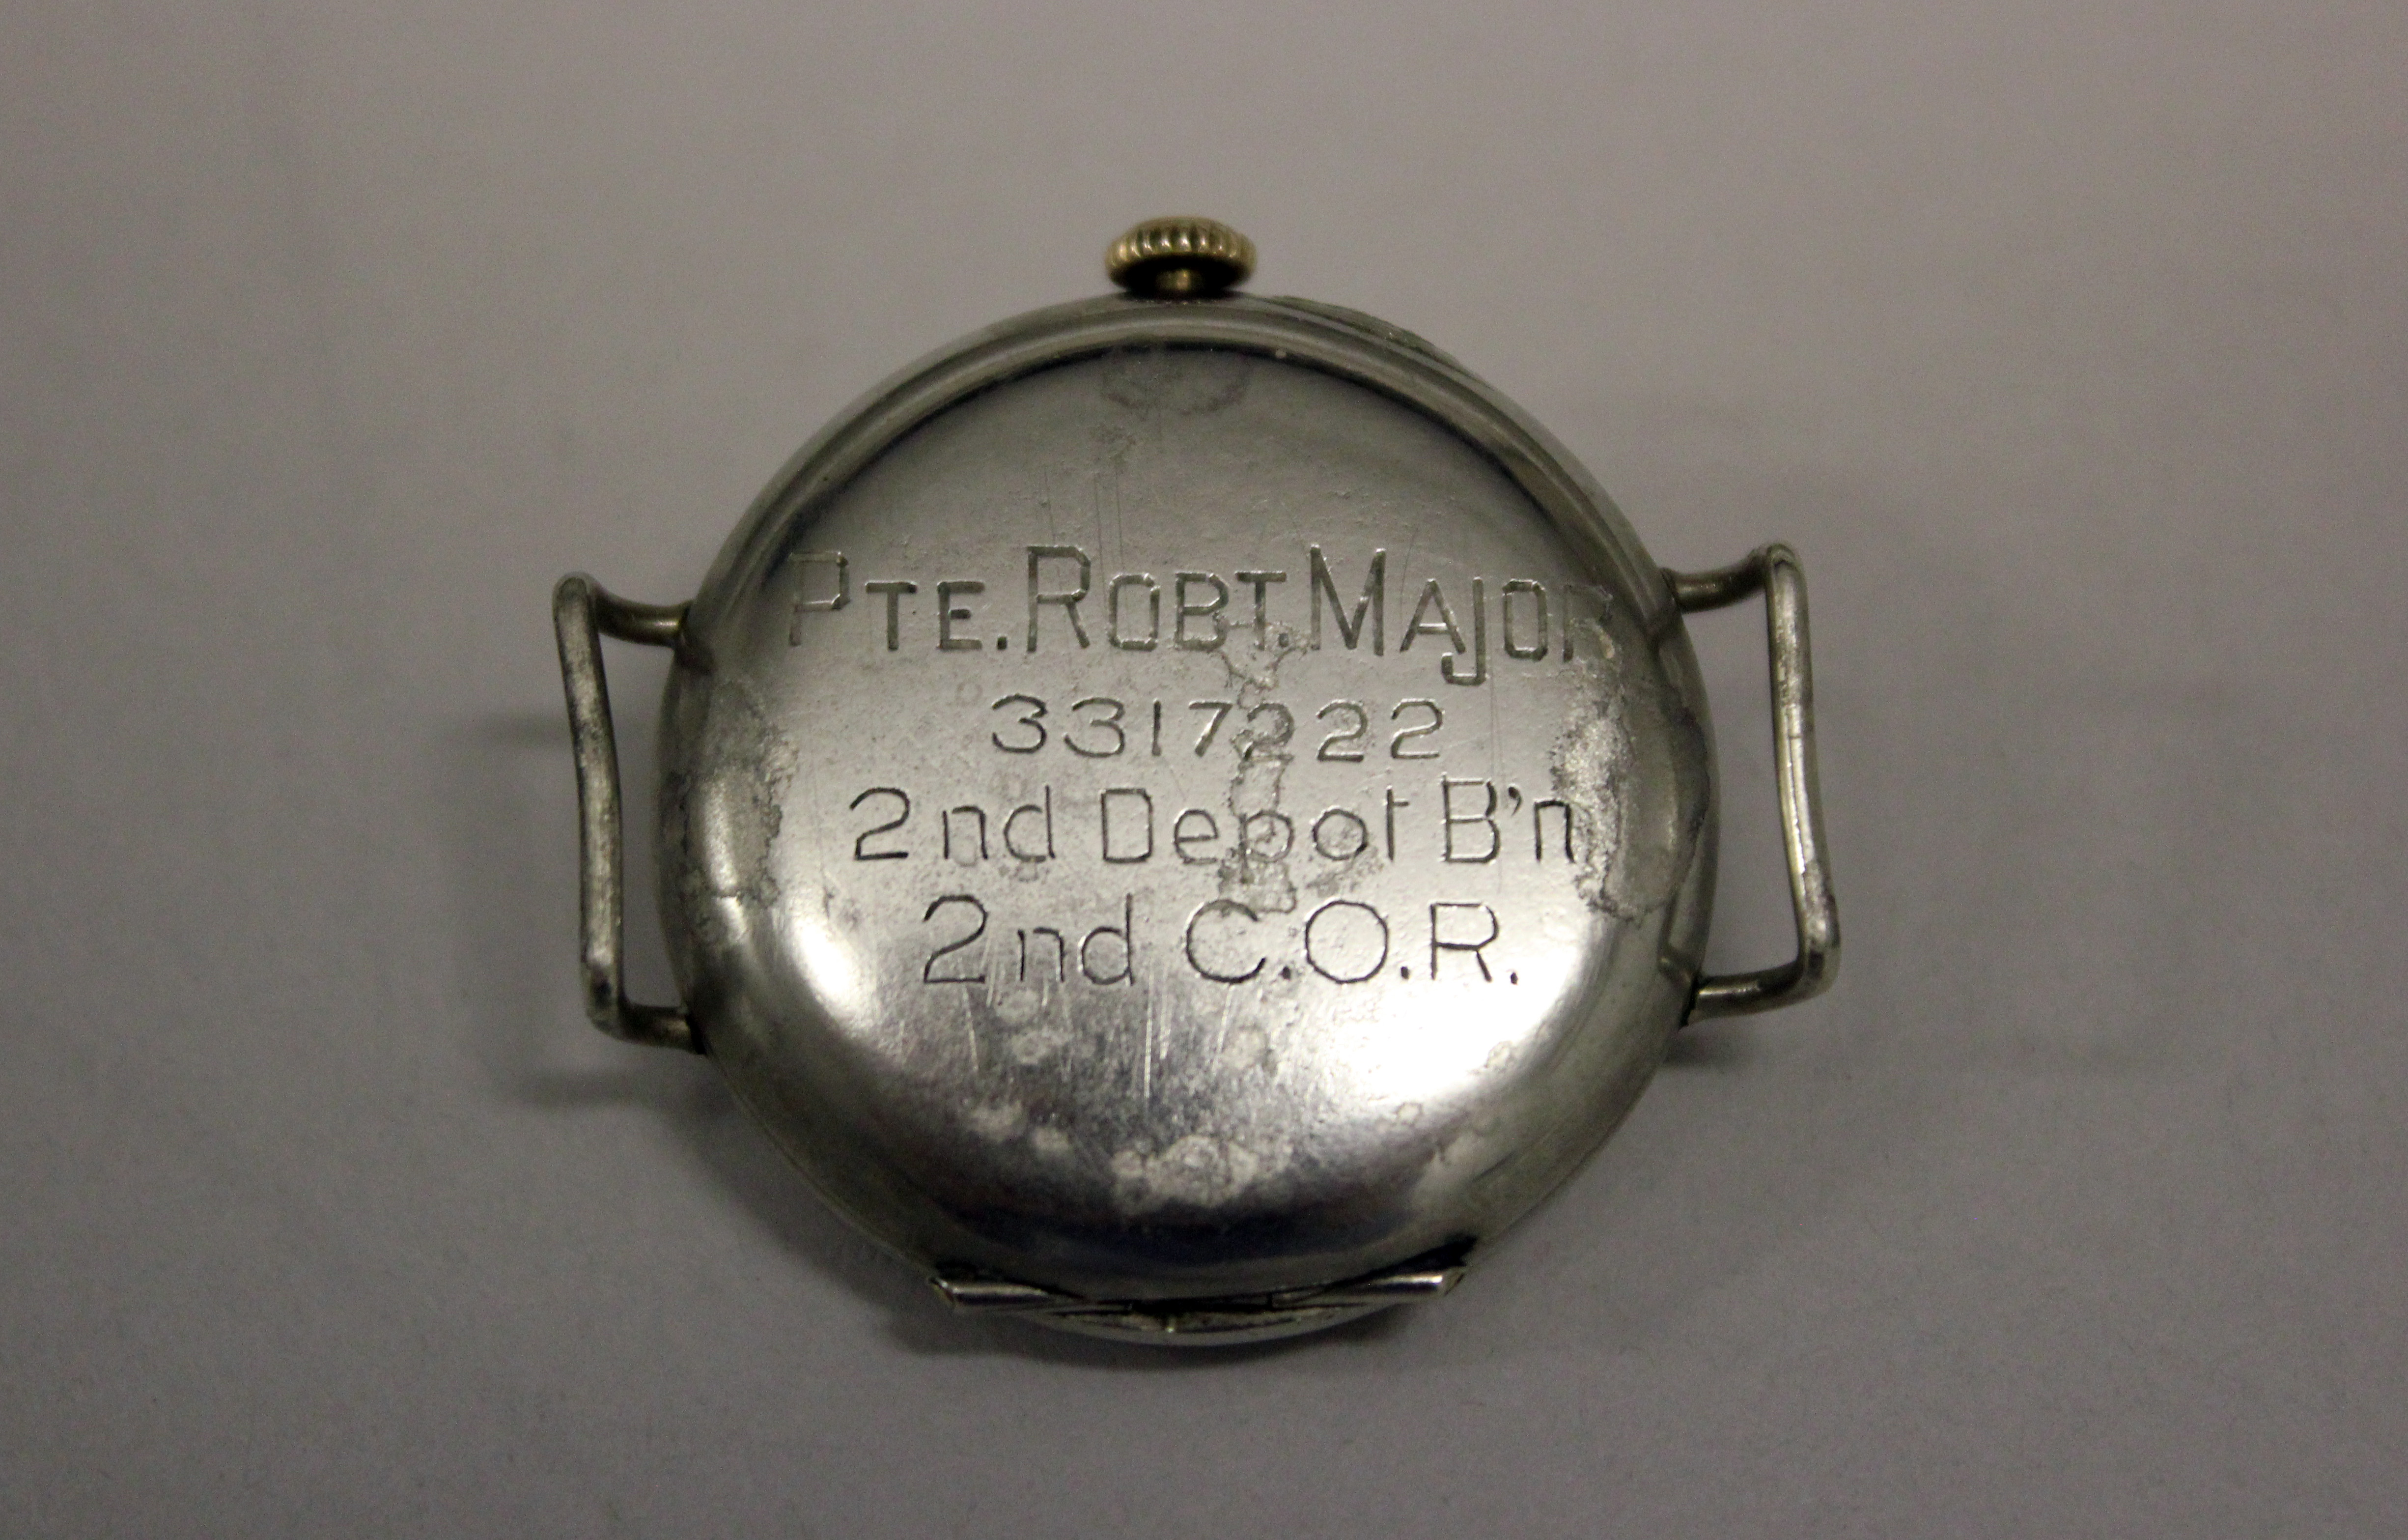 photograph of wristwatch